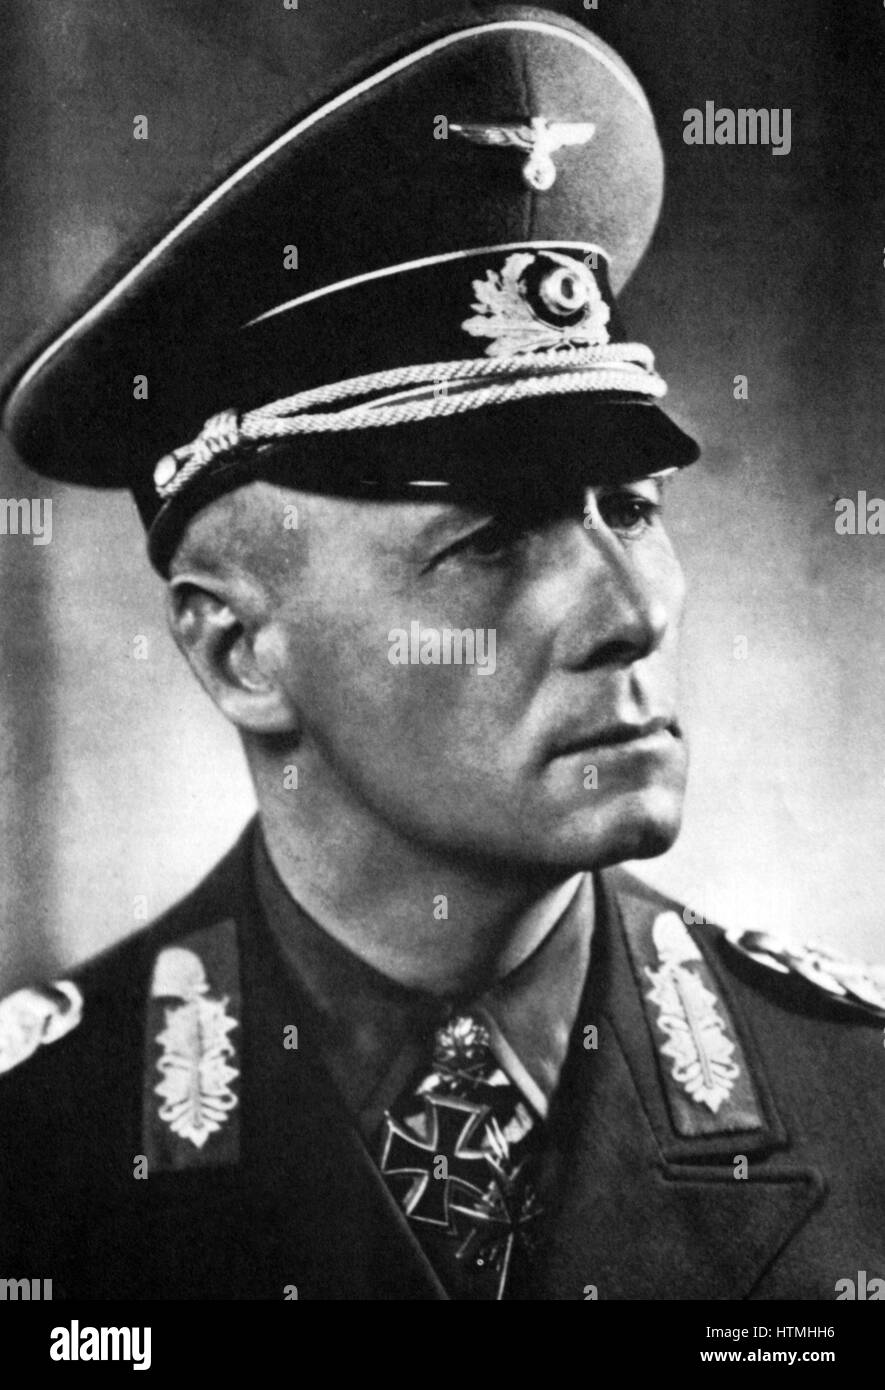 General Johanness Eugen Rommel (1891-1944) popularly known as The Desert Fox was a German Field Marshal of World - Stock Image